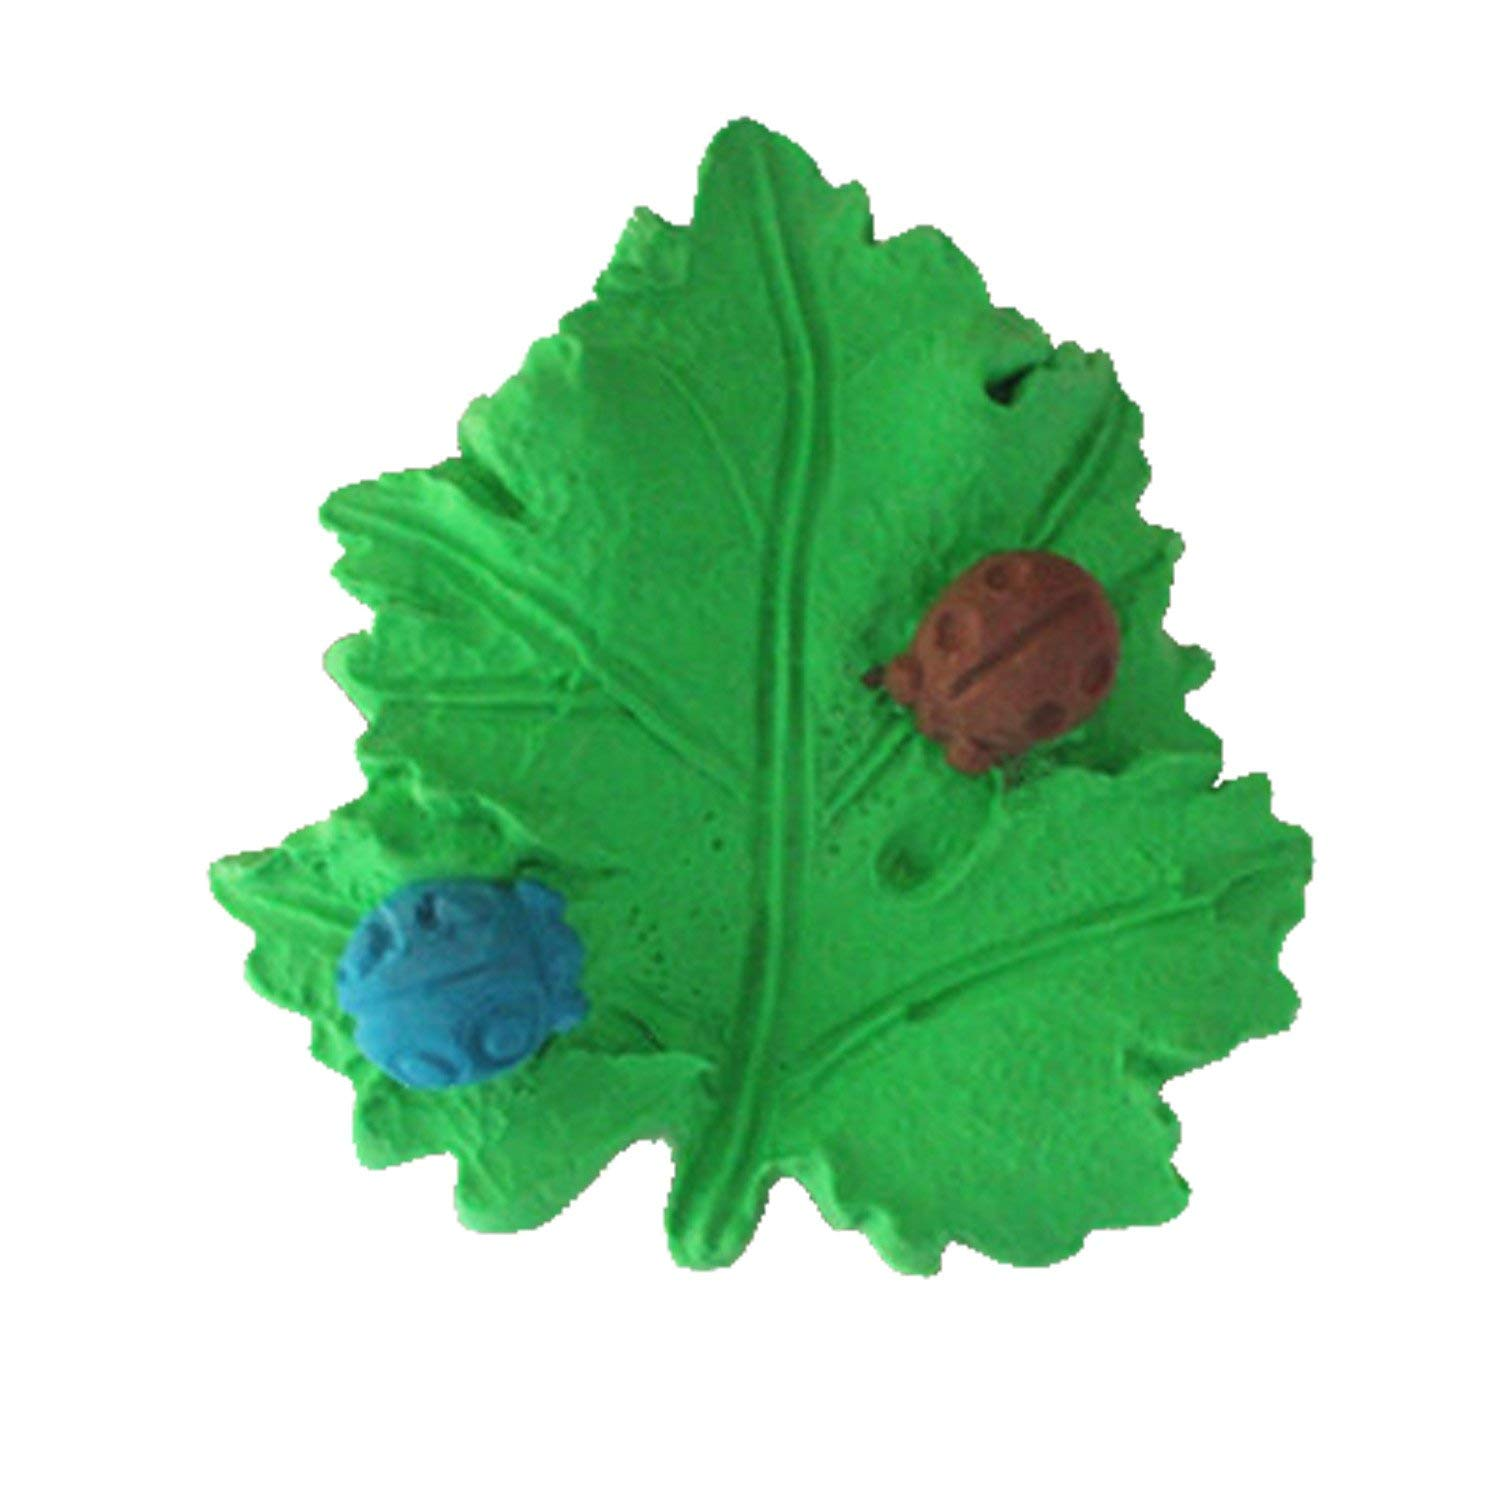 Longzang Ladybug on Leaf Mould Craft Art Silicone Soap Mold Craft Molds DIY Handmade Soap Molds (S382)